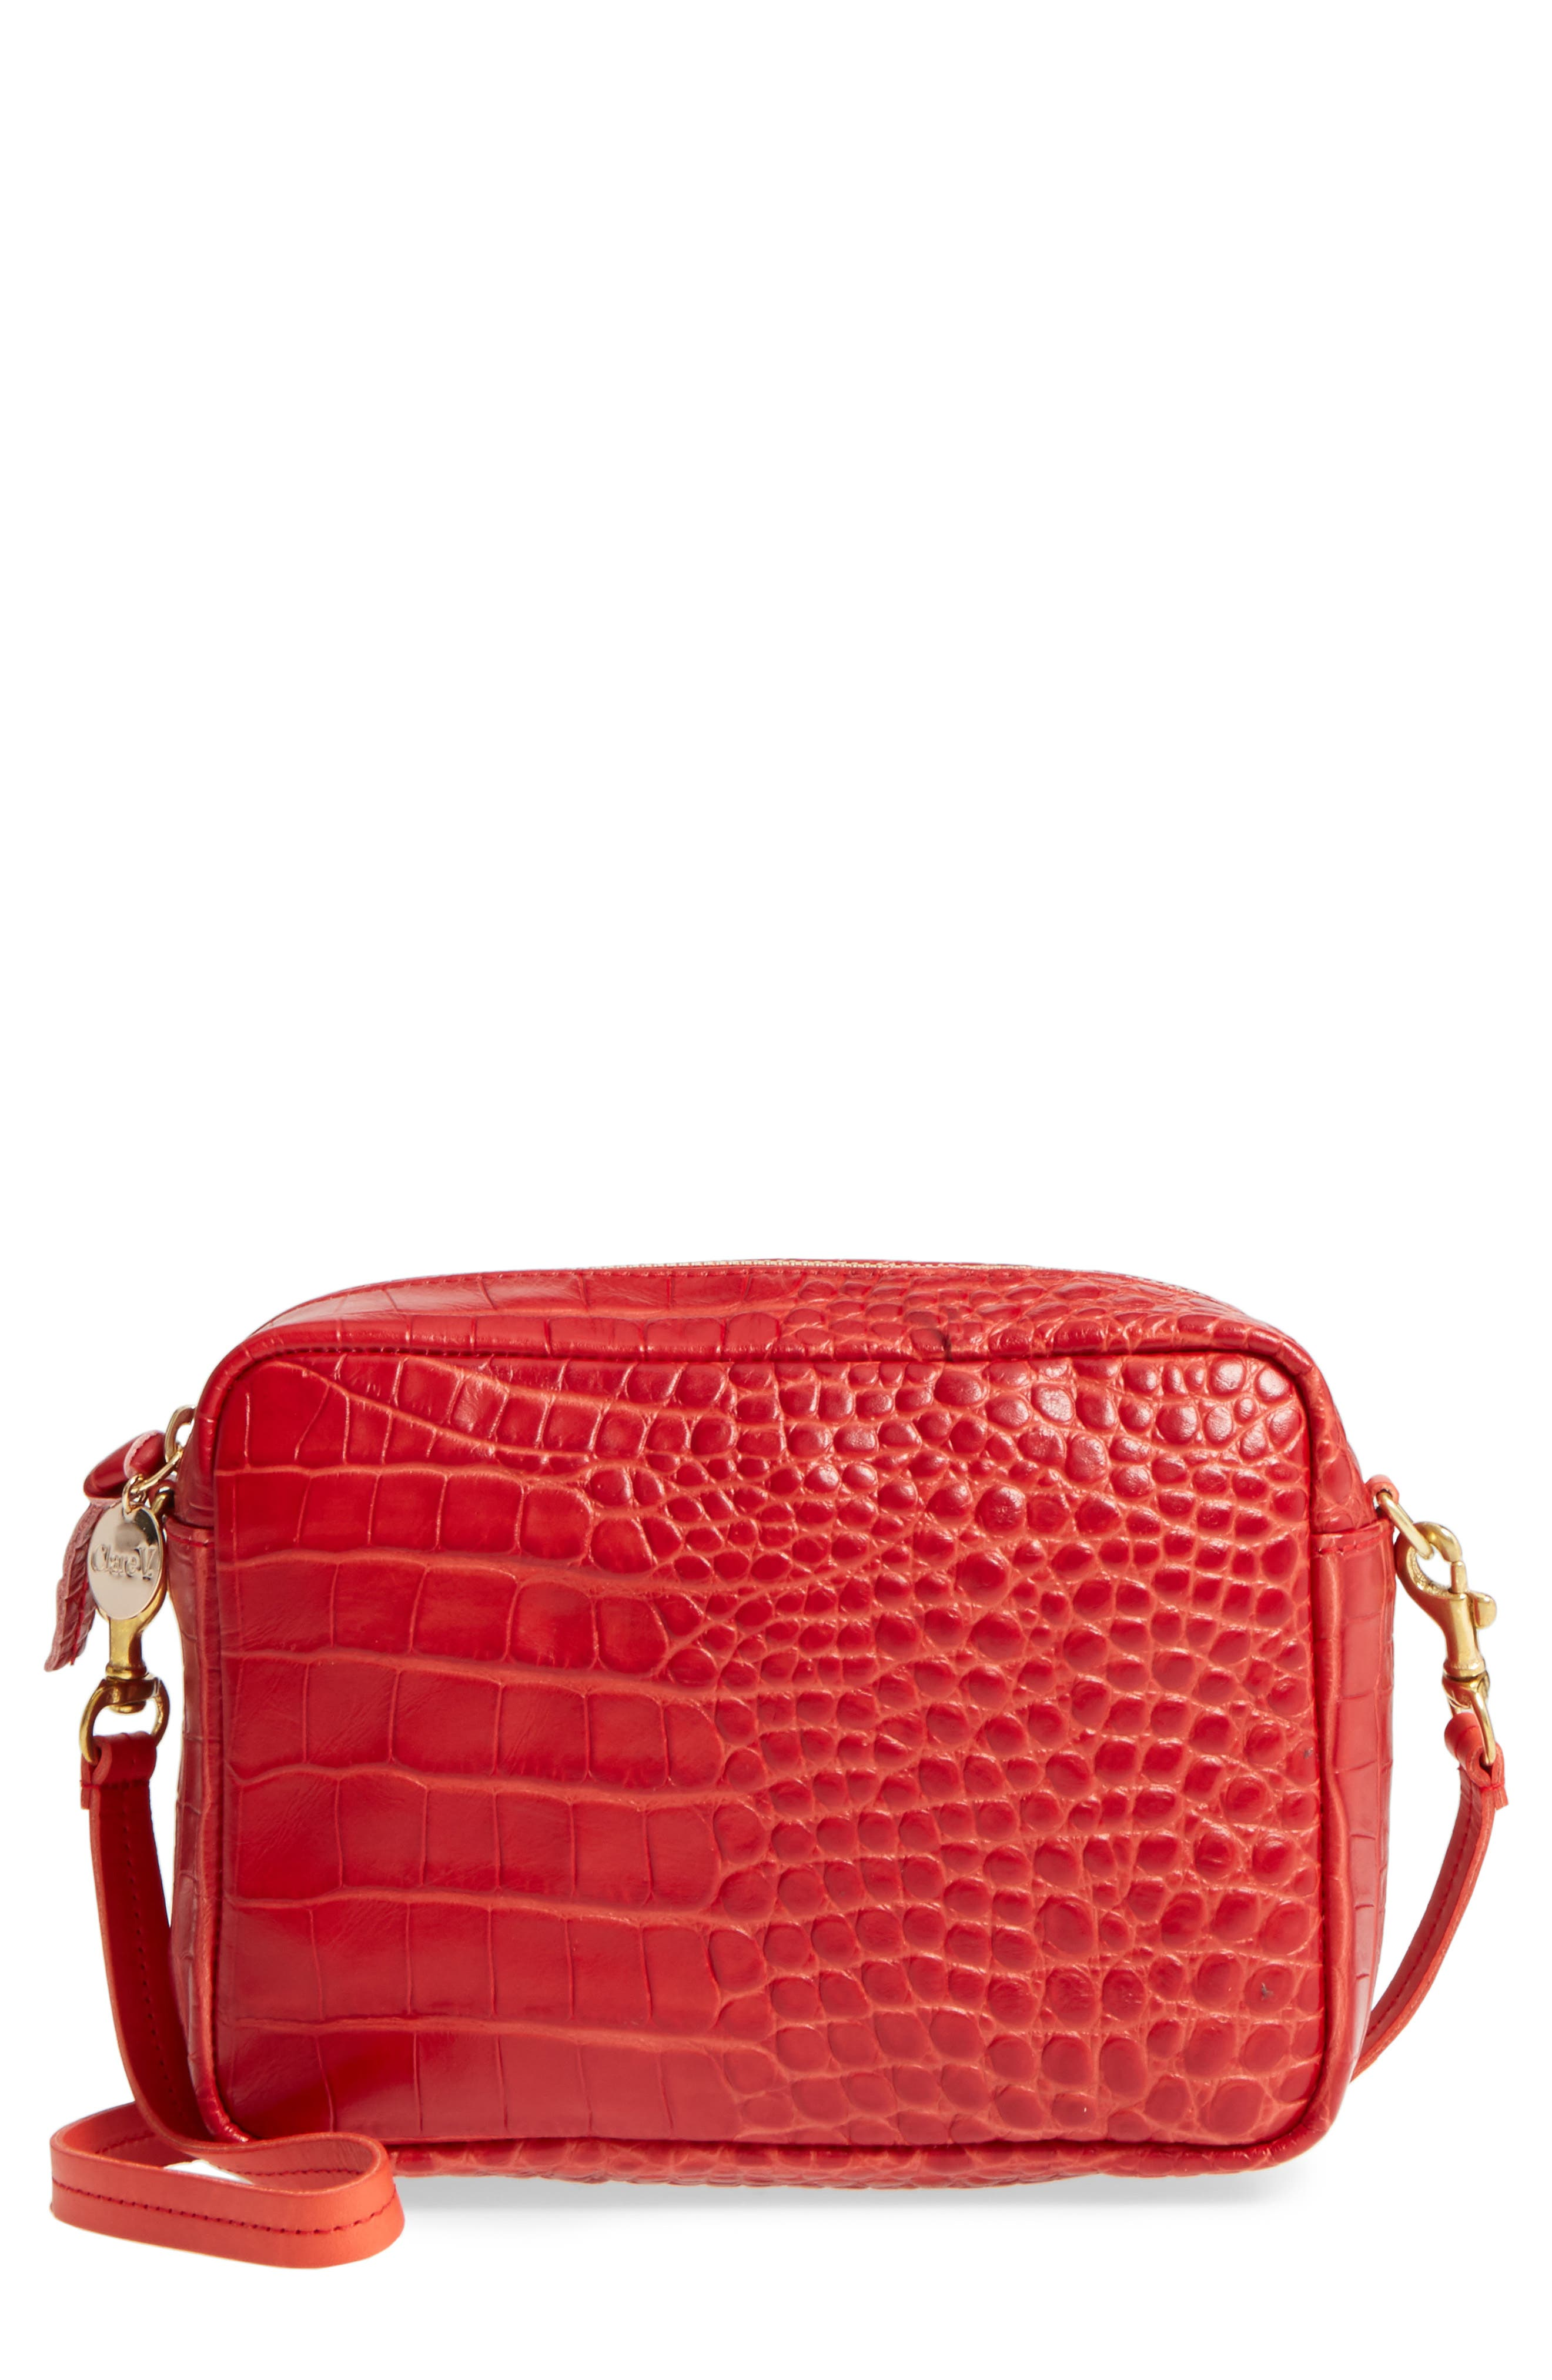 Main Image - Clare V. Midi Sac Supreme Croc Embossed Leather Crossbody Bag